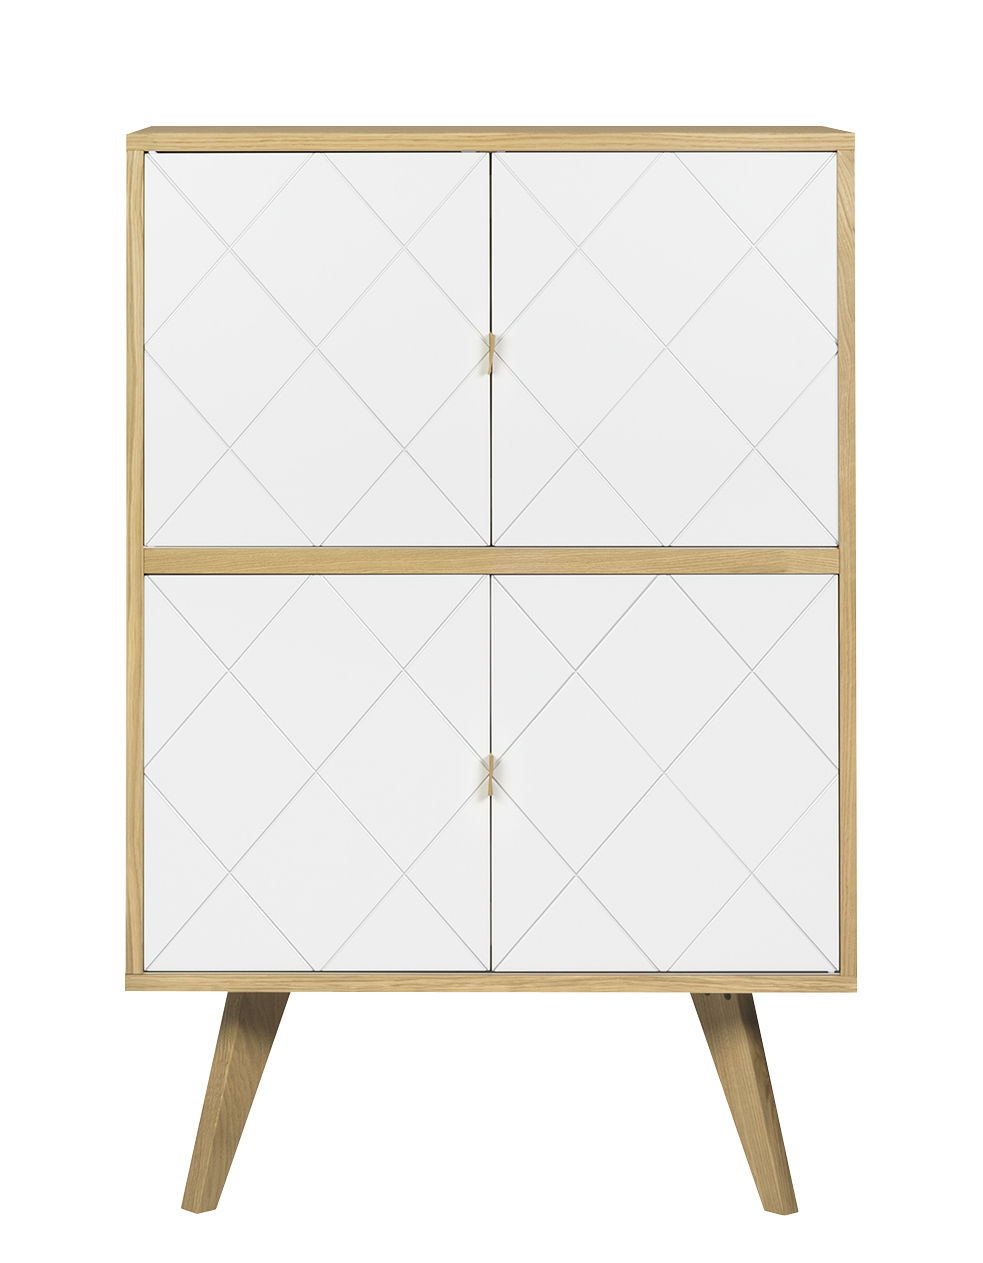 Furniture - Dressers & Storage Units - Butterfly Dresser - / Height - L 80 x H 125 cm by POP UP HOME - Oak / White - Oak plywood, Painted chipboard, Solid oak